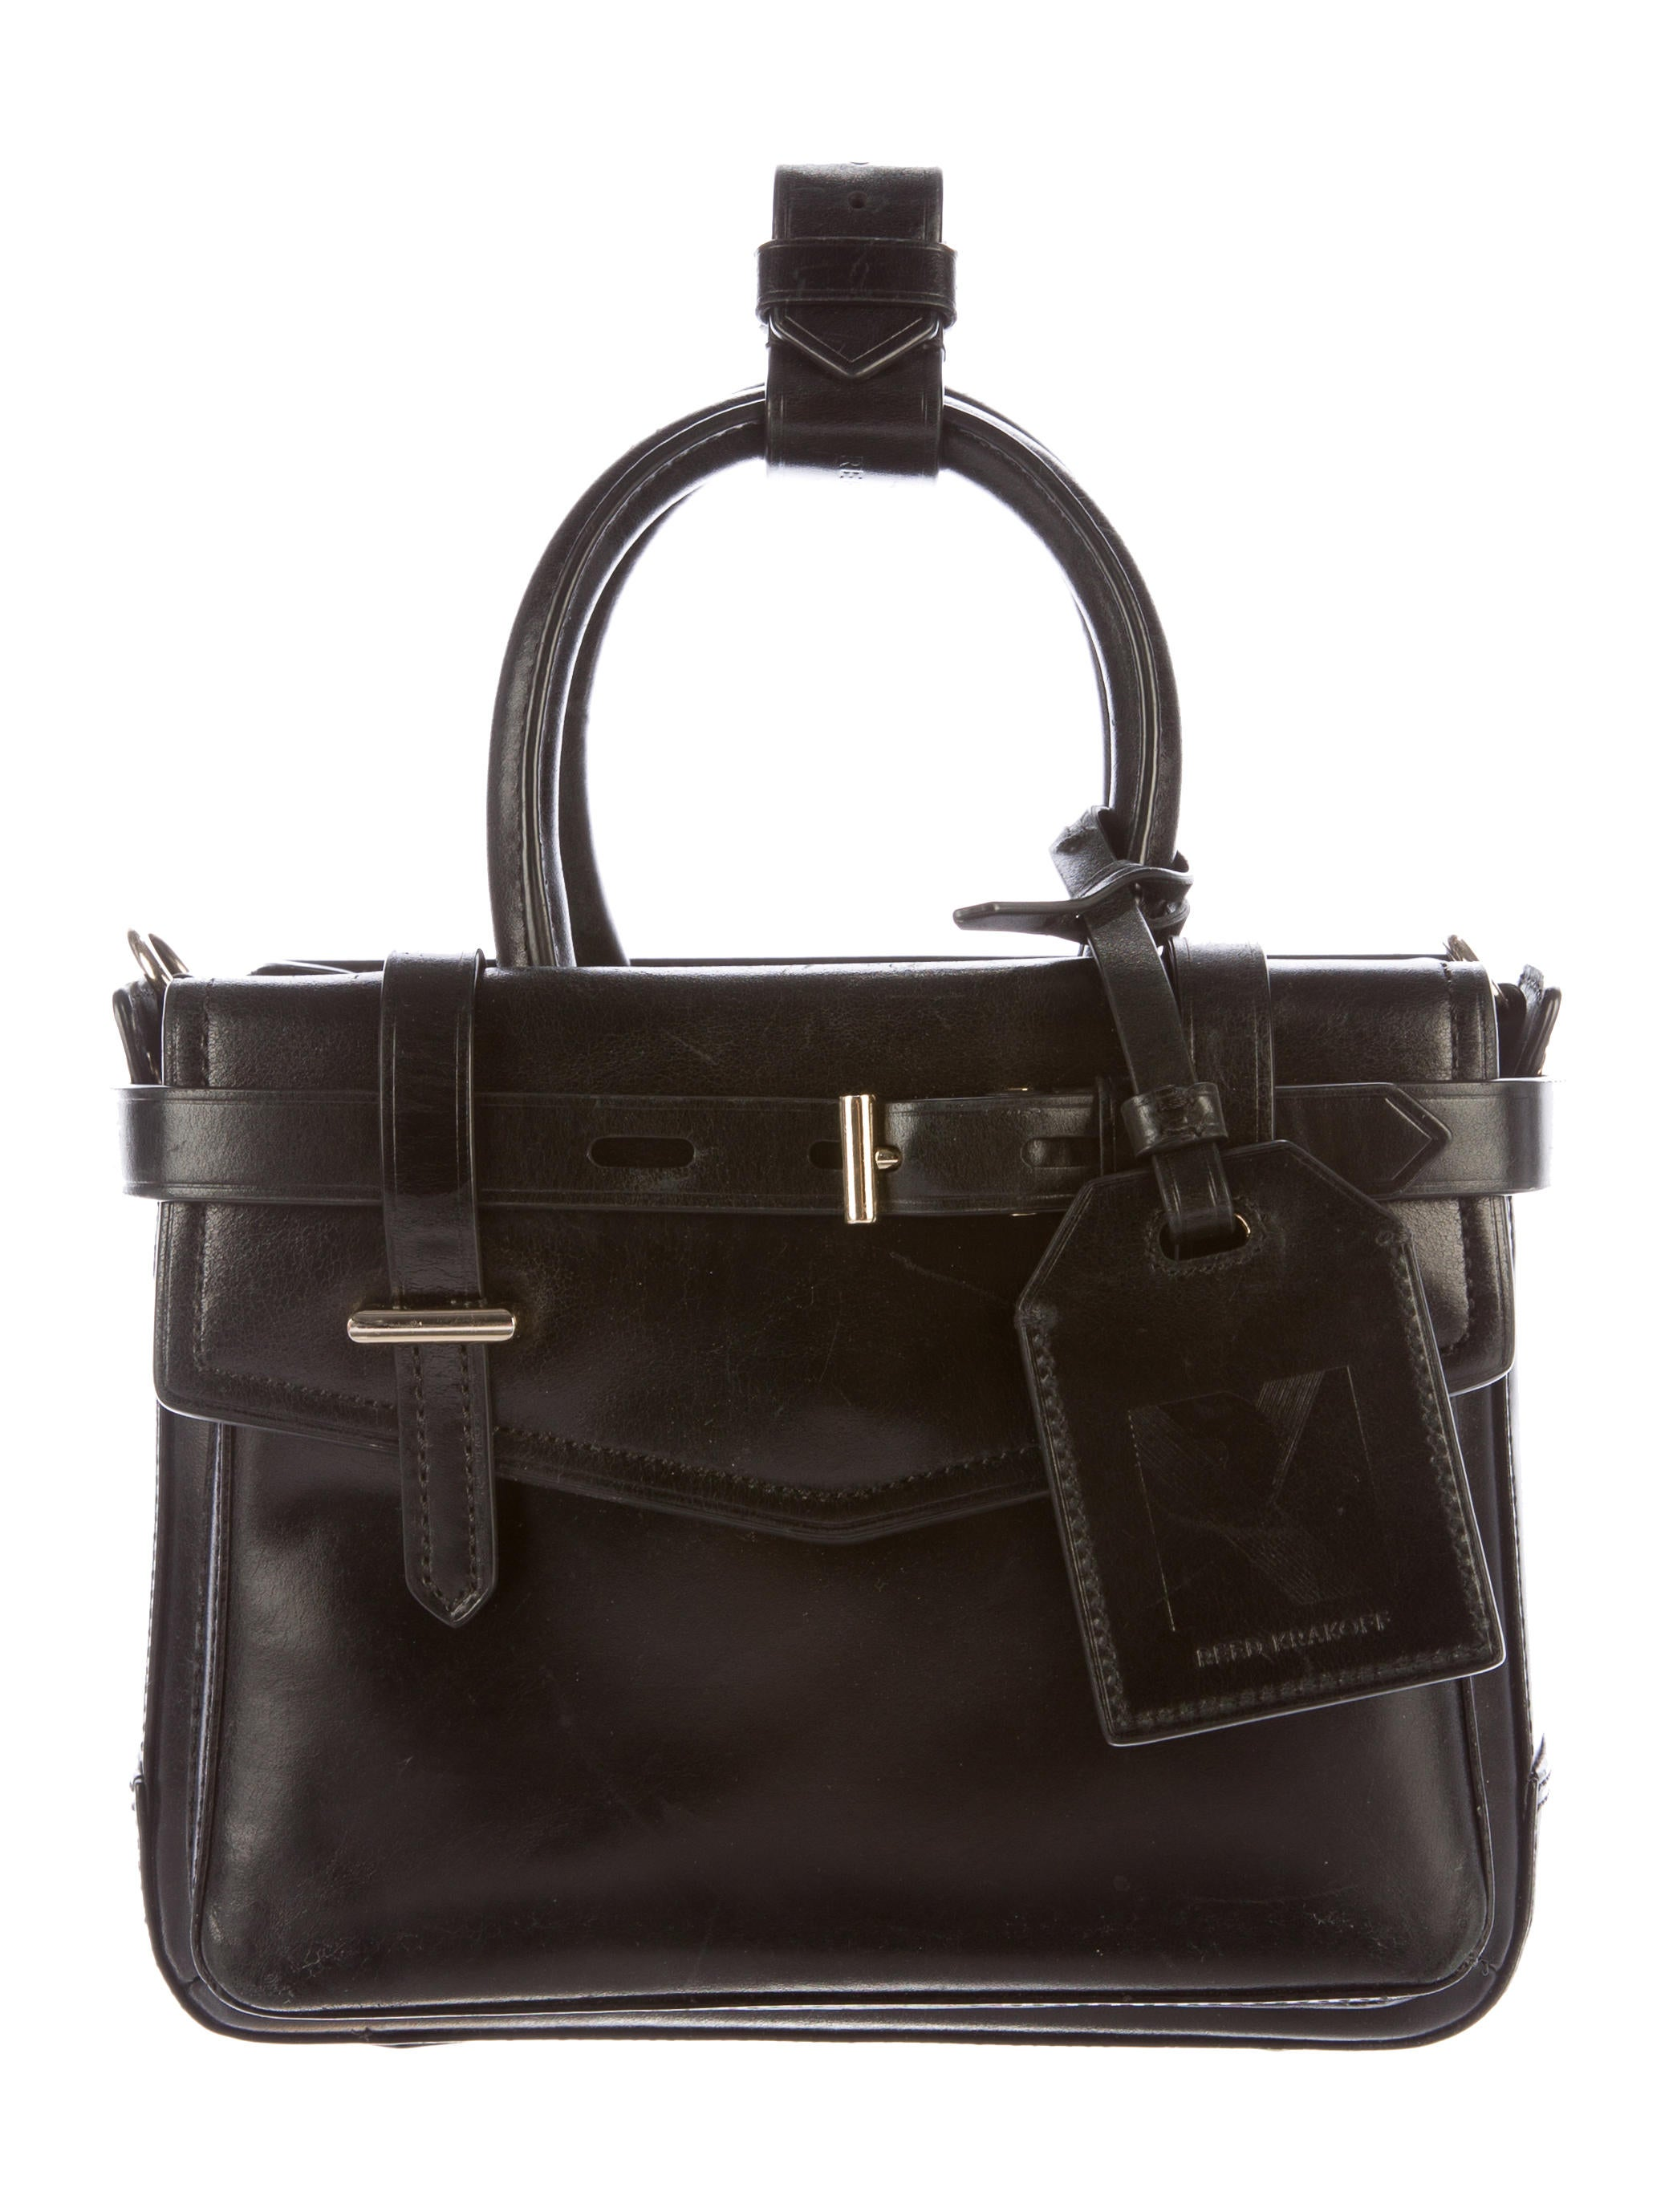 Reed Krakoff Mini Boxer Bag Handbags Ree26207 The